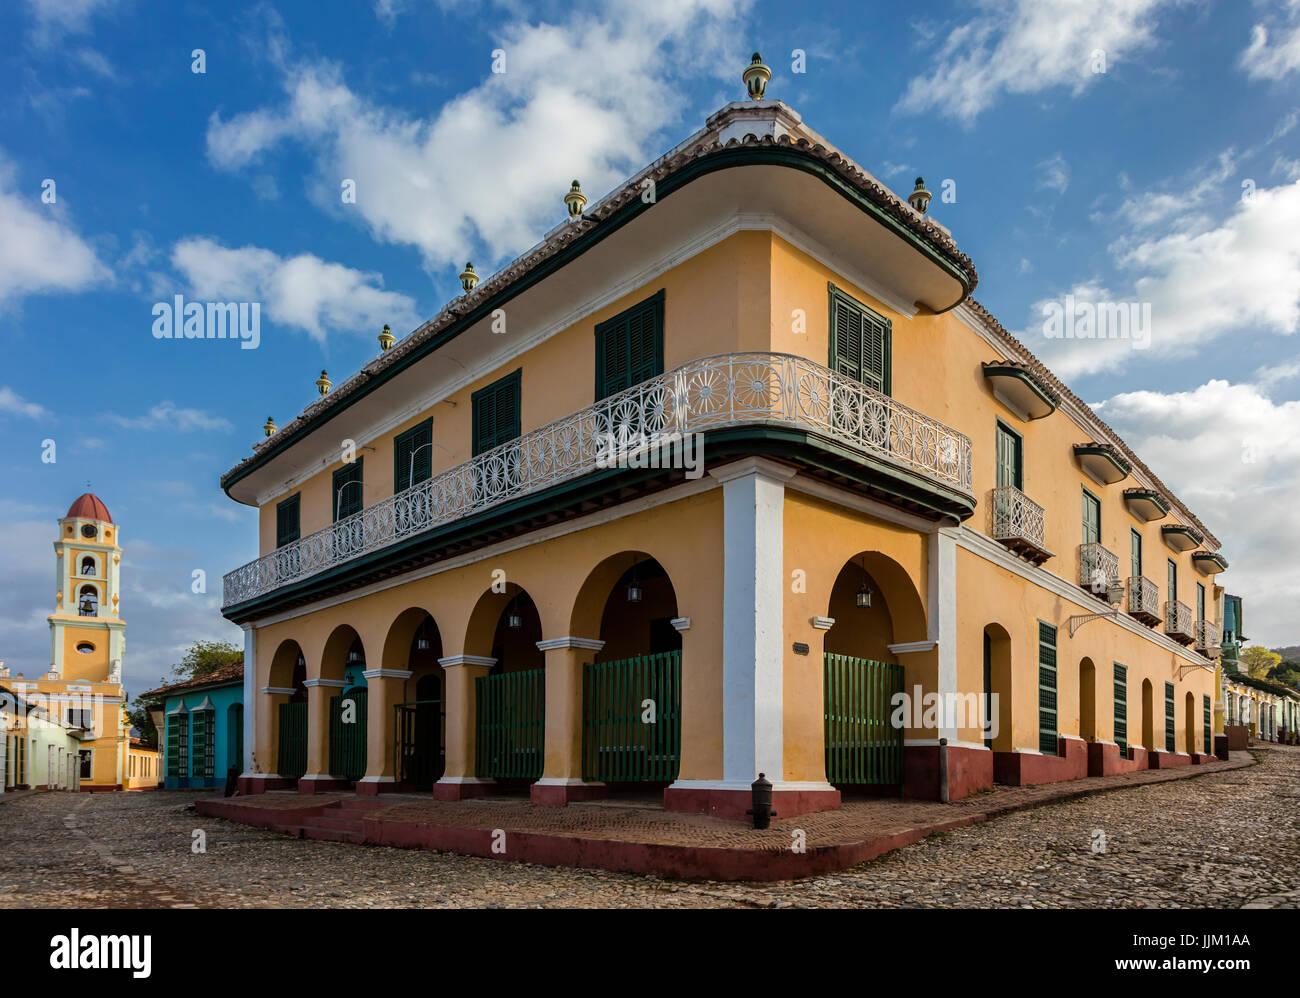 Museo Romantico.The Museo Romantico Is Housed In The Former Palacio Brunet On The